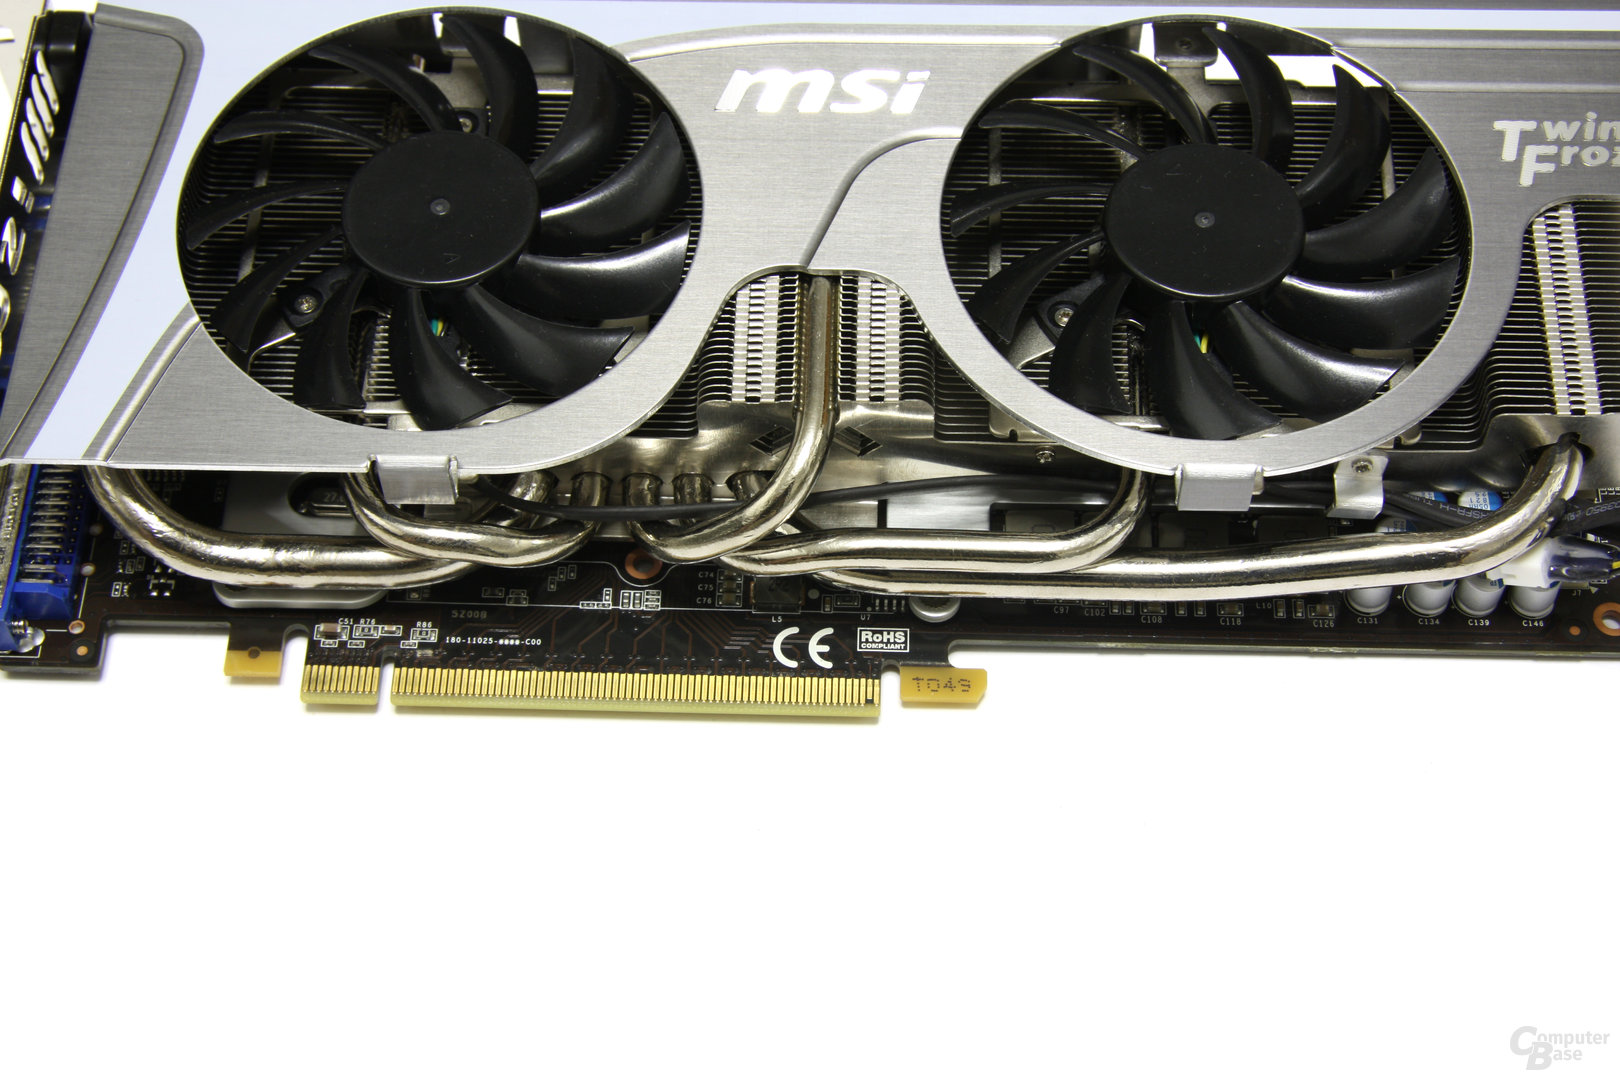 GeForce GTX 470 Twin Frozr II Heatpipes 2